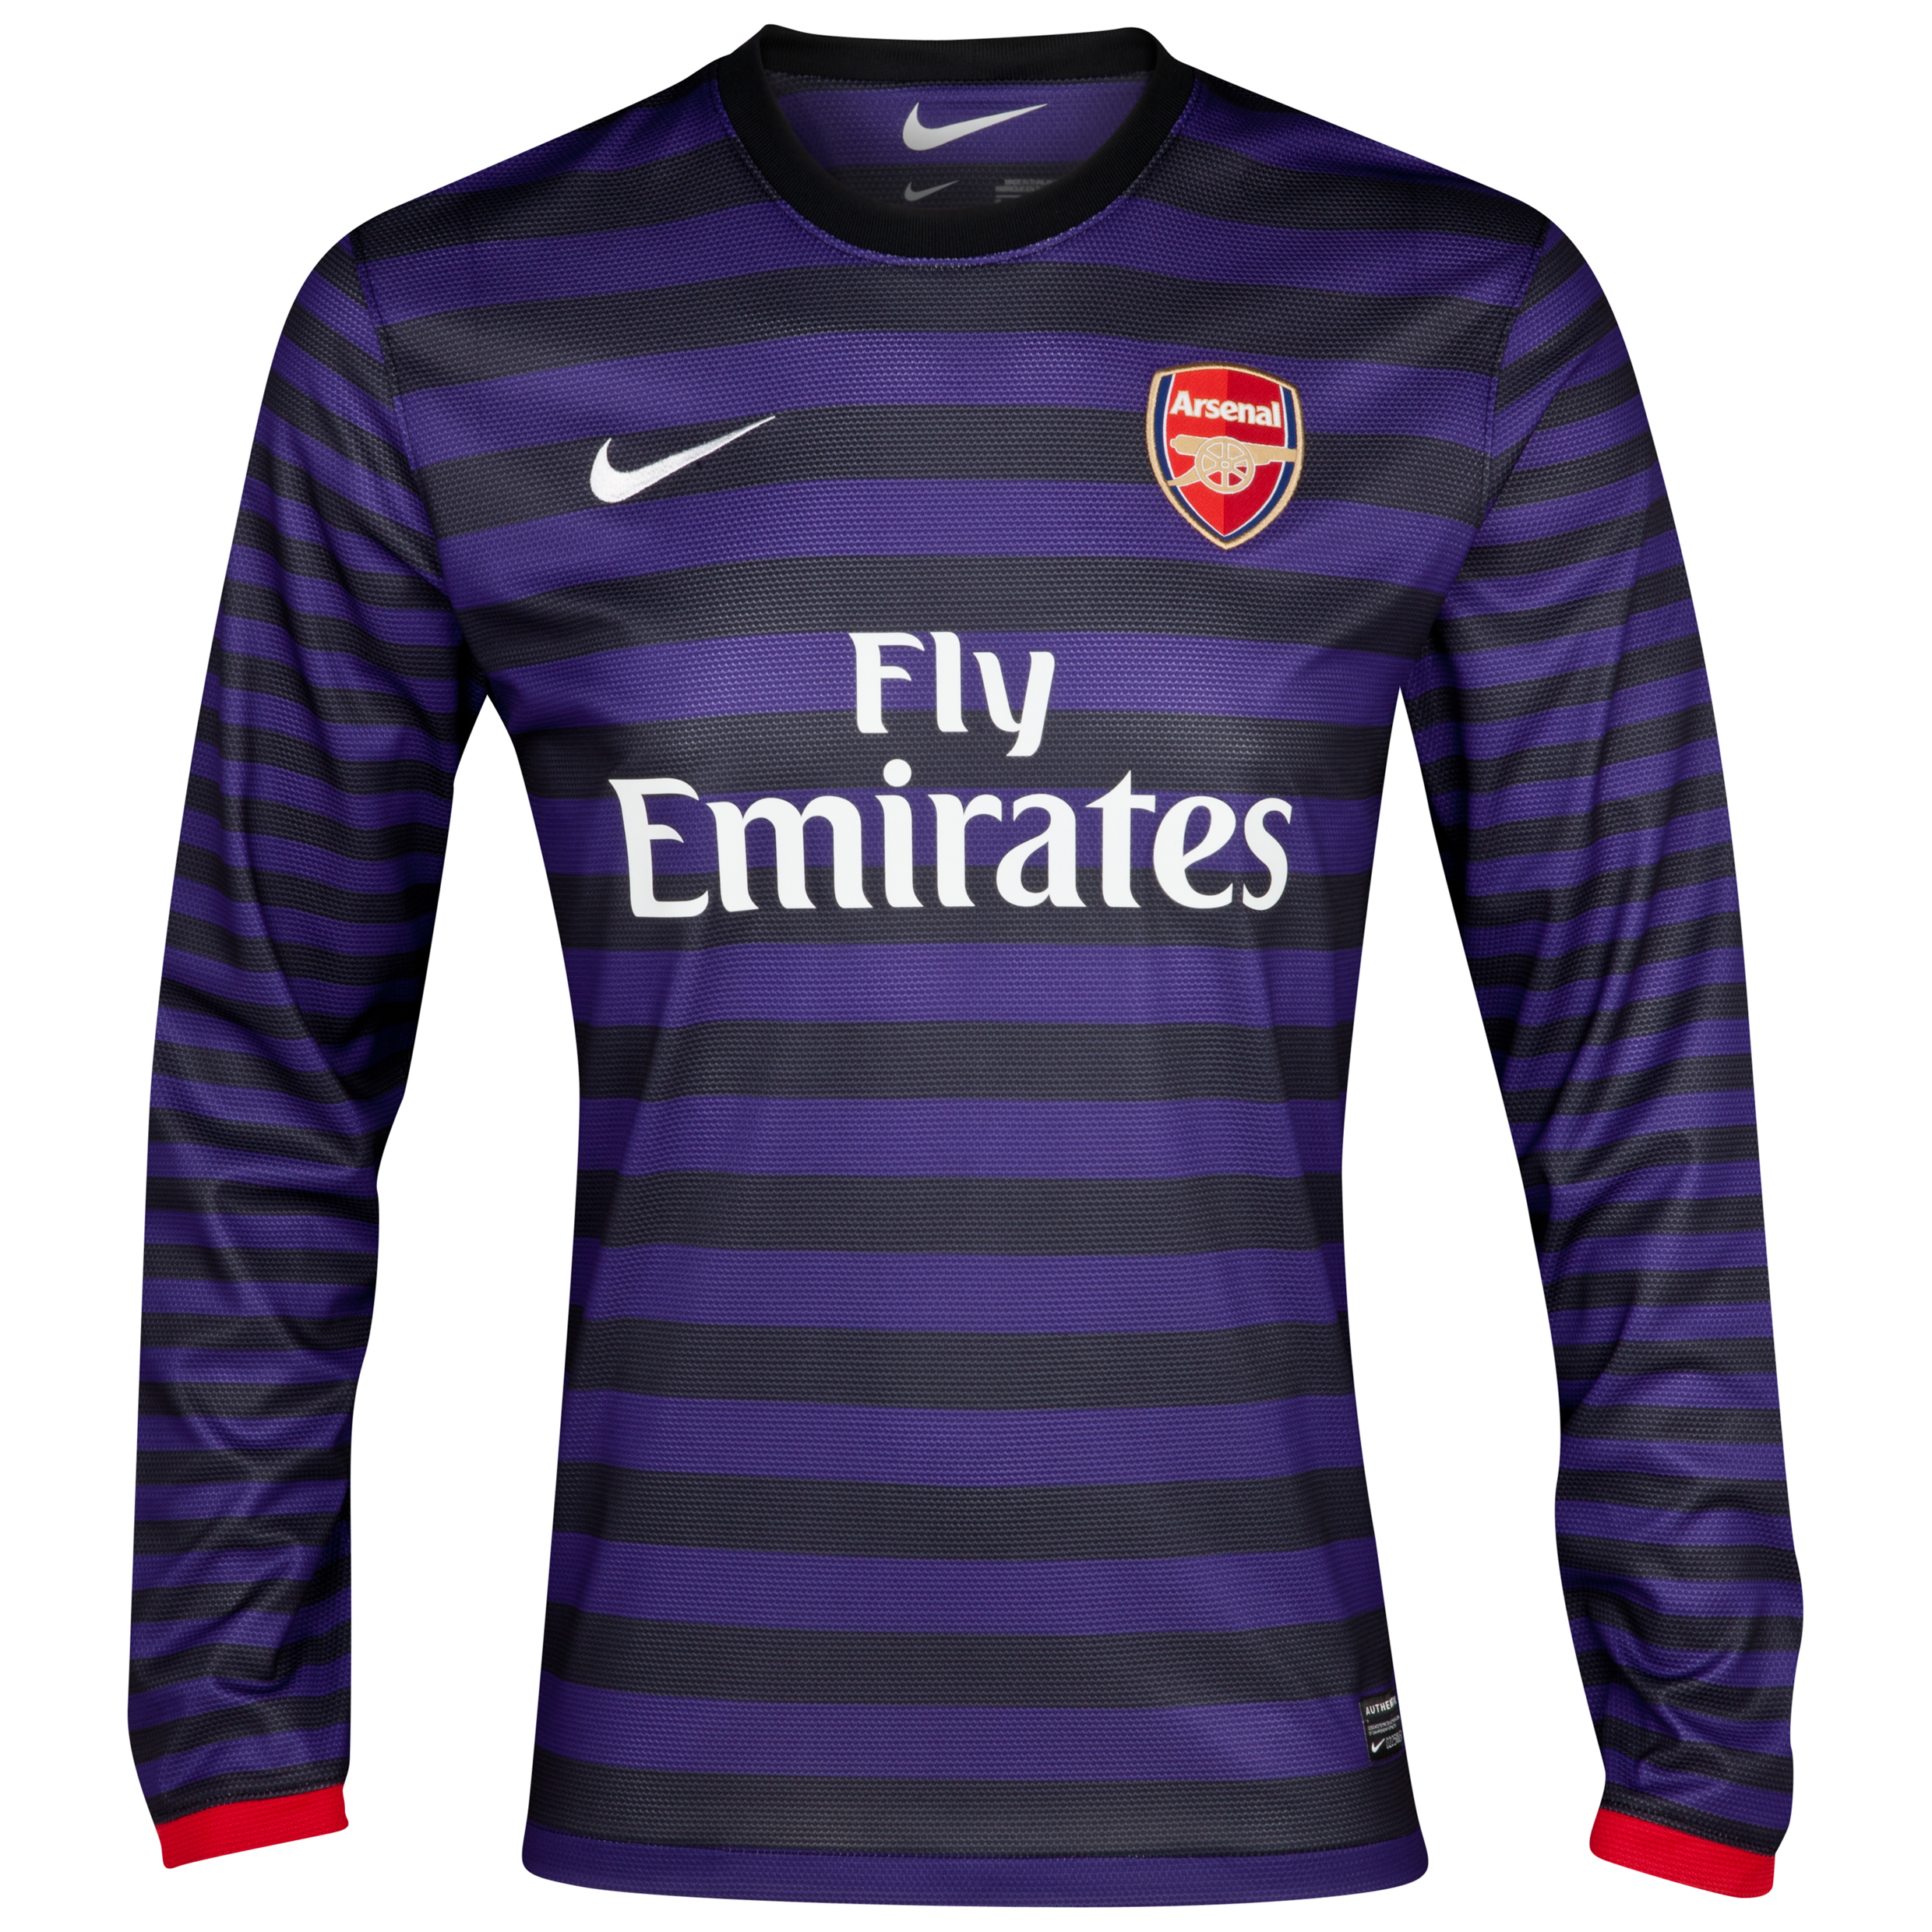 Arsenal Away Shirt 2012/13 - Long Sleeve